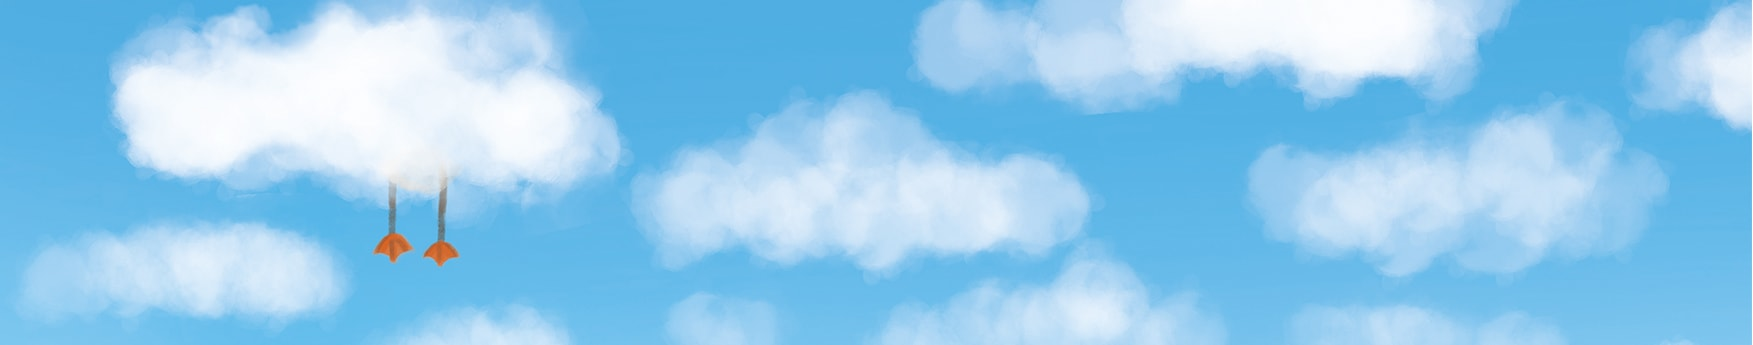 background_clouds-left-2